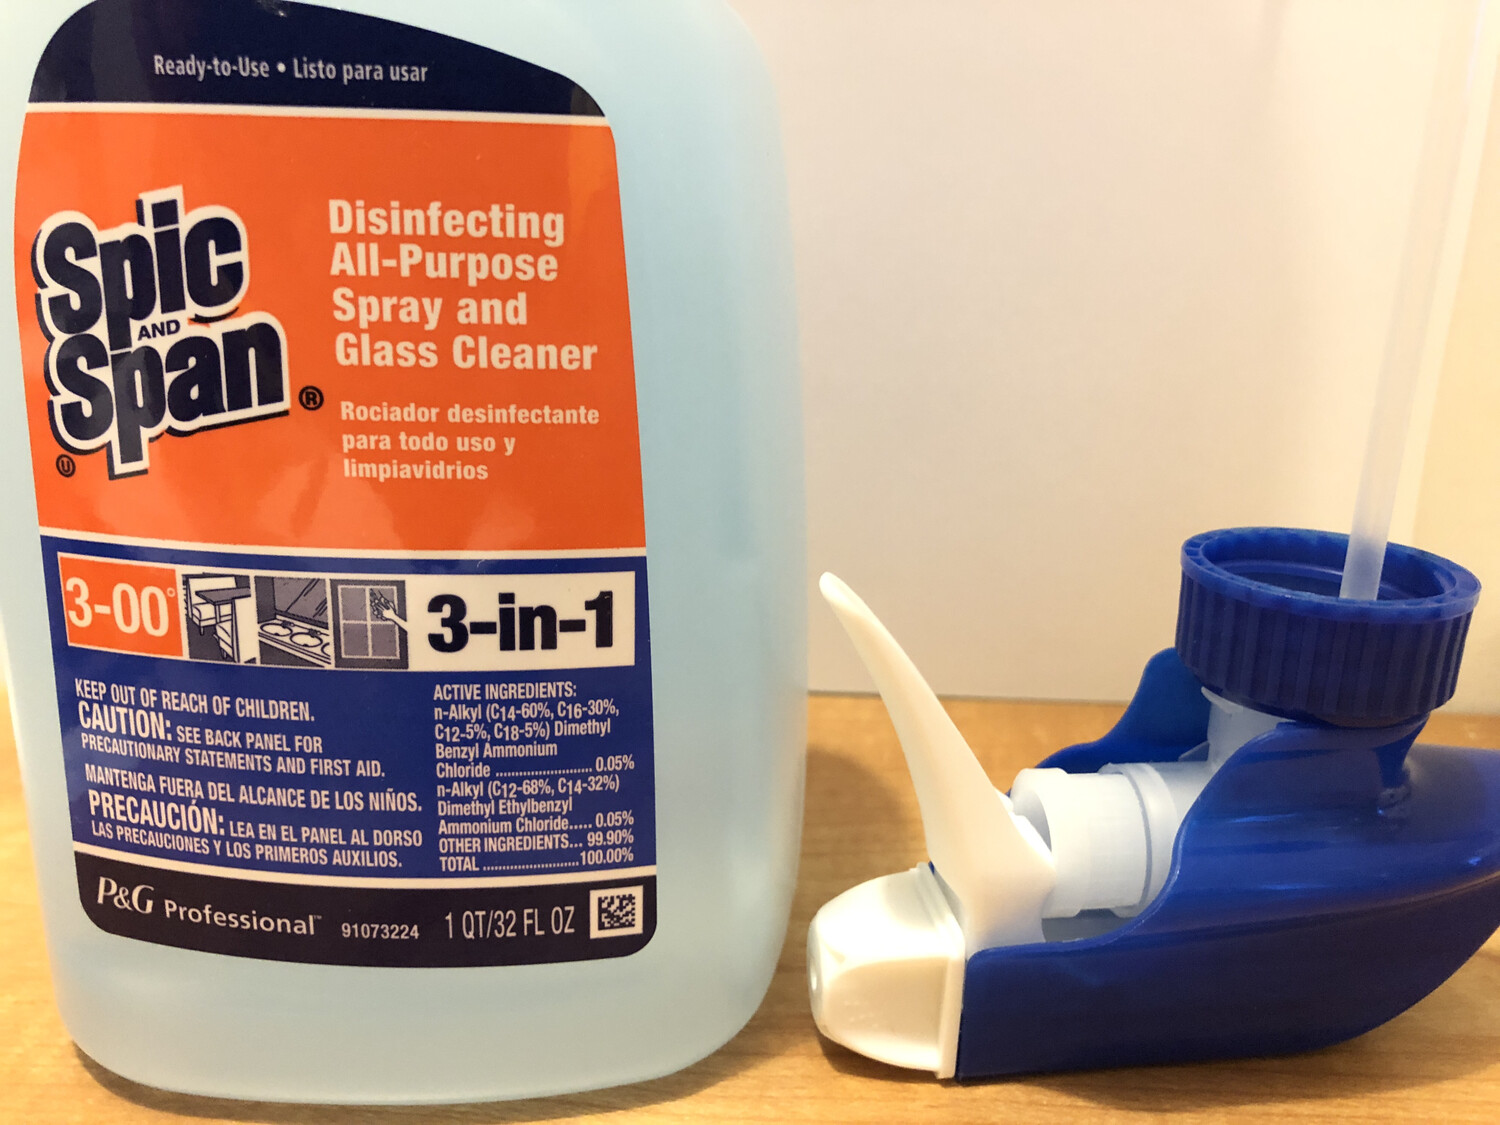 Cleaner All Purpose Disinfecting Spic & Span Spray 32oz. (2pack Only)